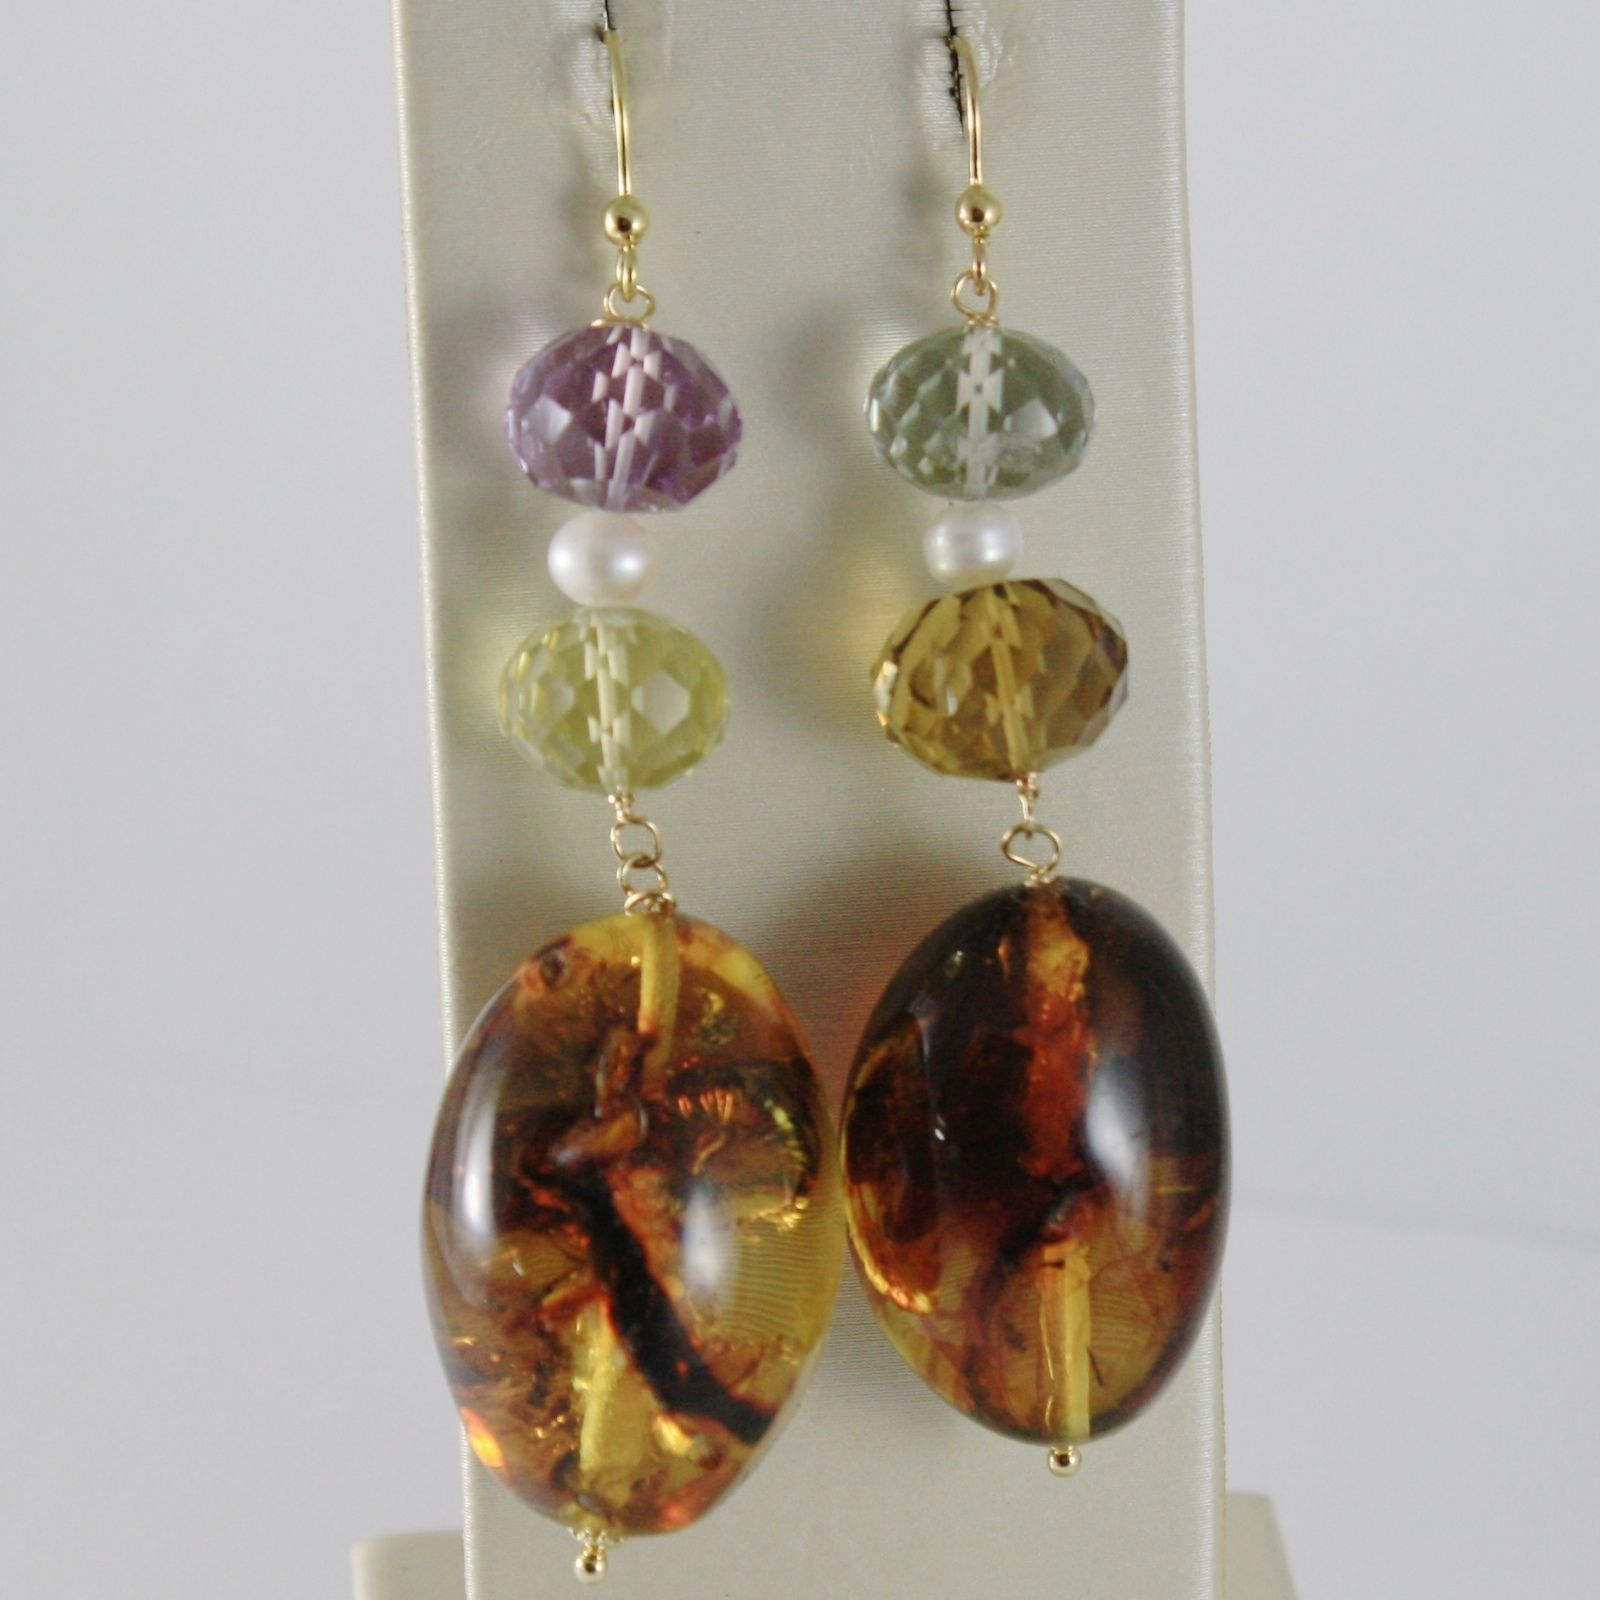 18K YELLOW GOLD PENDANT EARRINGS AMBER AMETHYST LEMON QUARTZ CITRINE PRASIOLITE